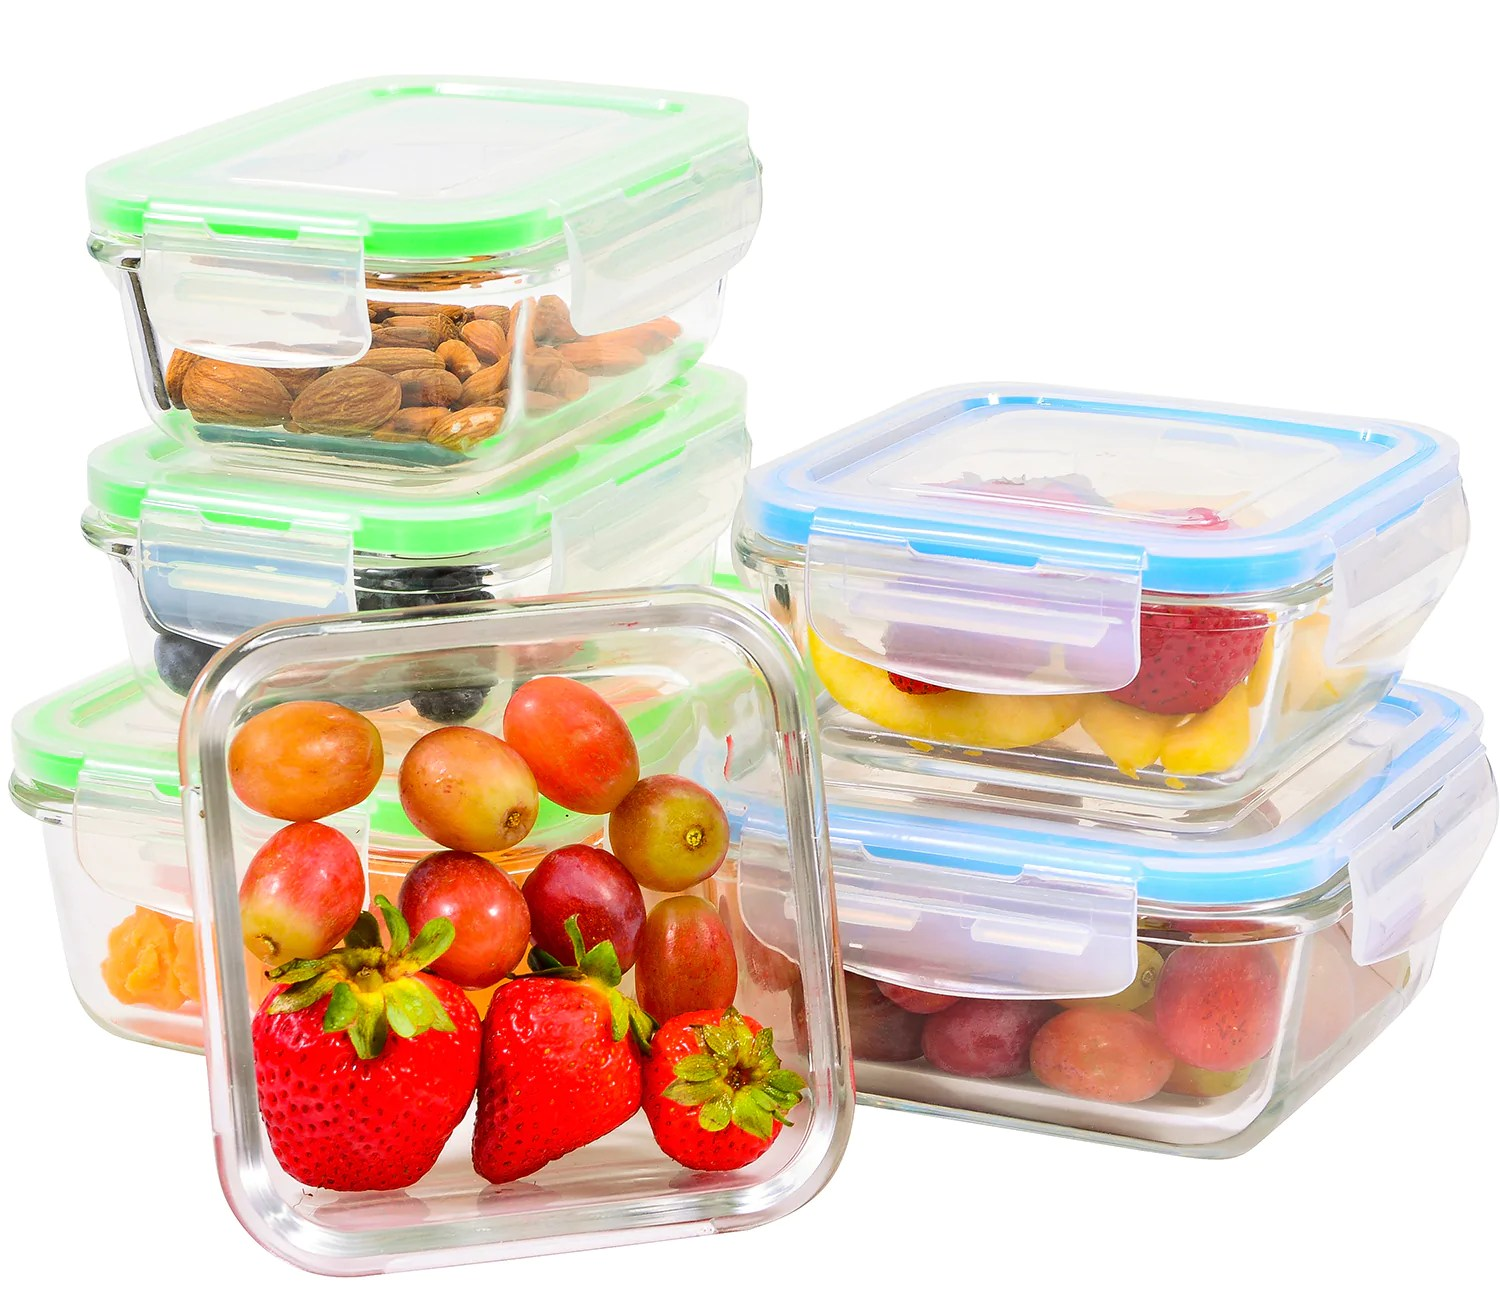 elacra glass meal prep containers with locking lids 6 piece leakproof glass food storage containers for kitchen organization and storage